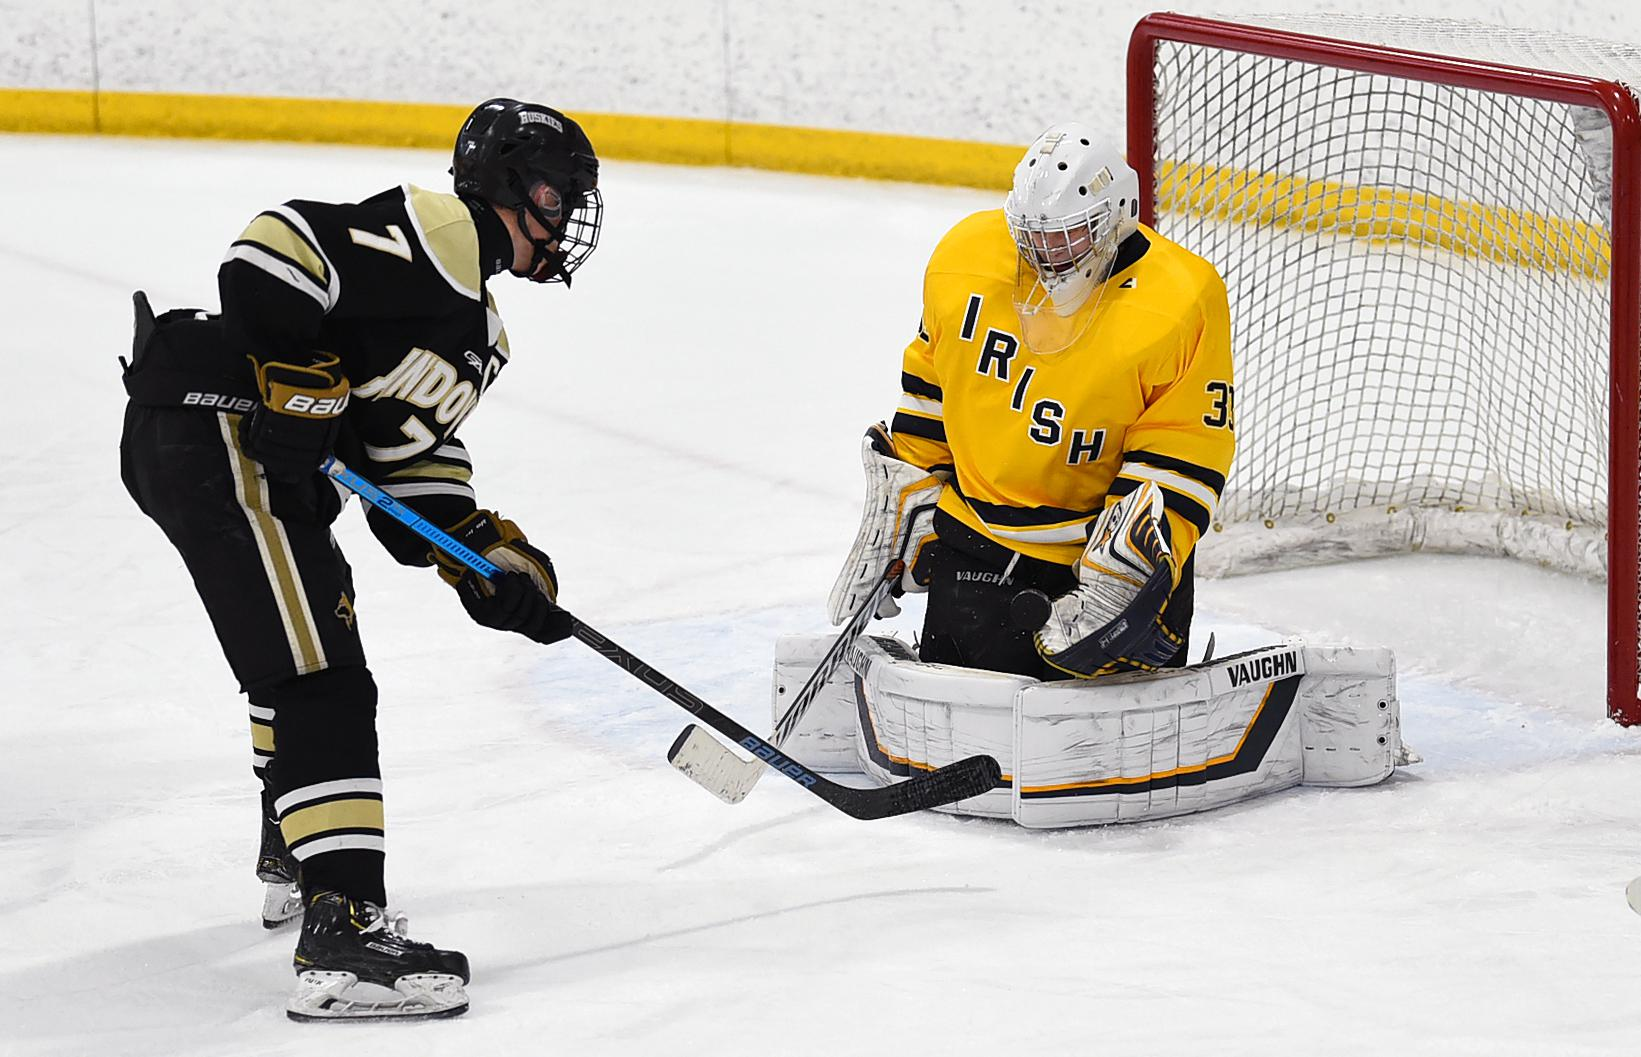 A close-range shot by Andover's Luke Kron is stopped by Rosemount goaltender Will Tollefson during Thursday's game at the St. Louis Park Rec Center. Photo by Loren Nelson, LegacyHockeyPhotography.com